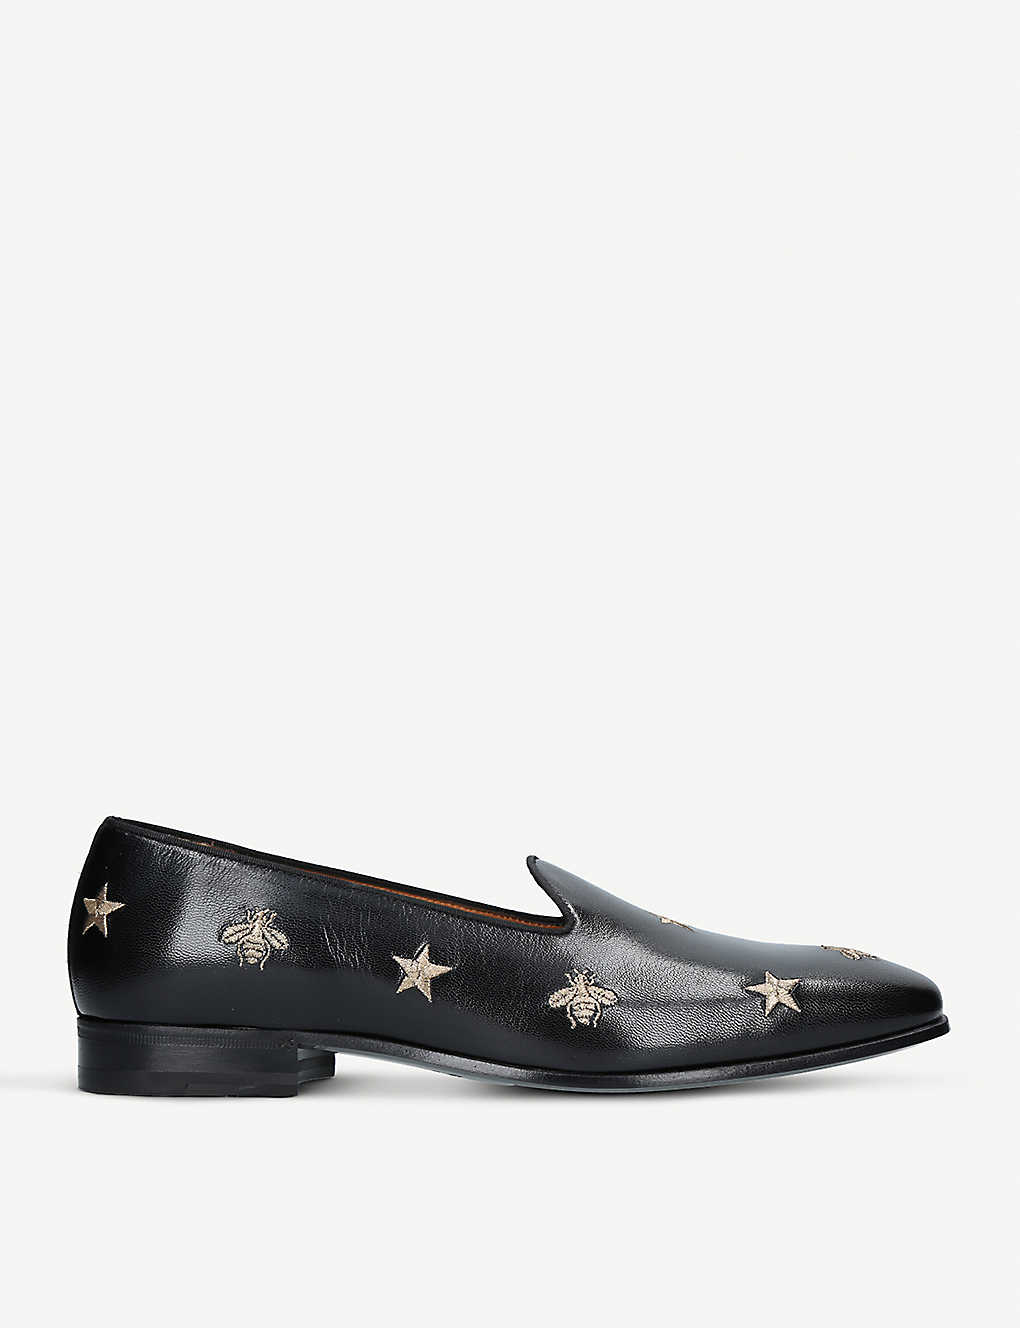 c75bd77b7e5 GUCCI - Gallipoli bee leather loafers